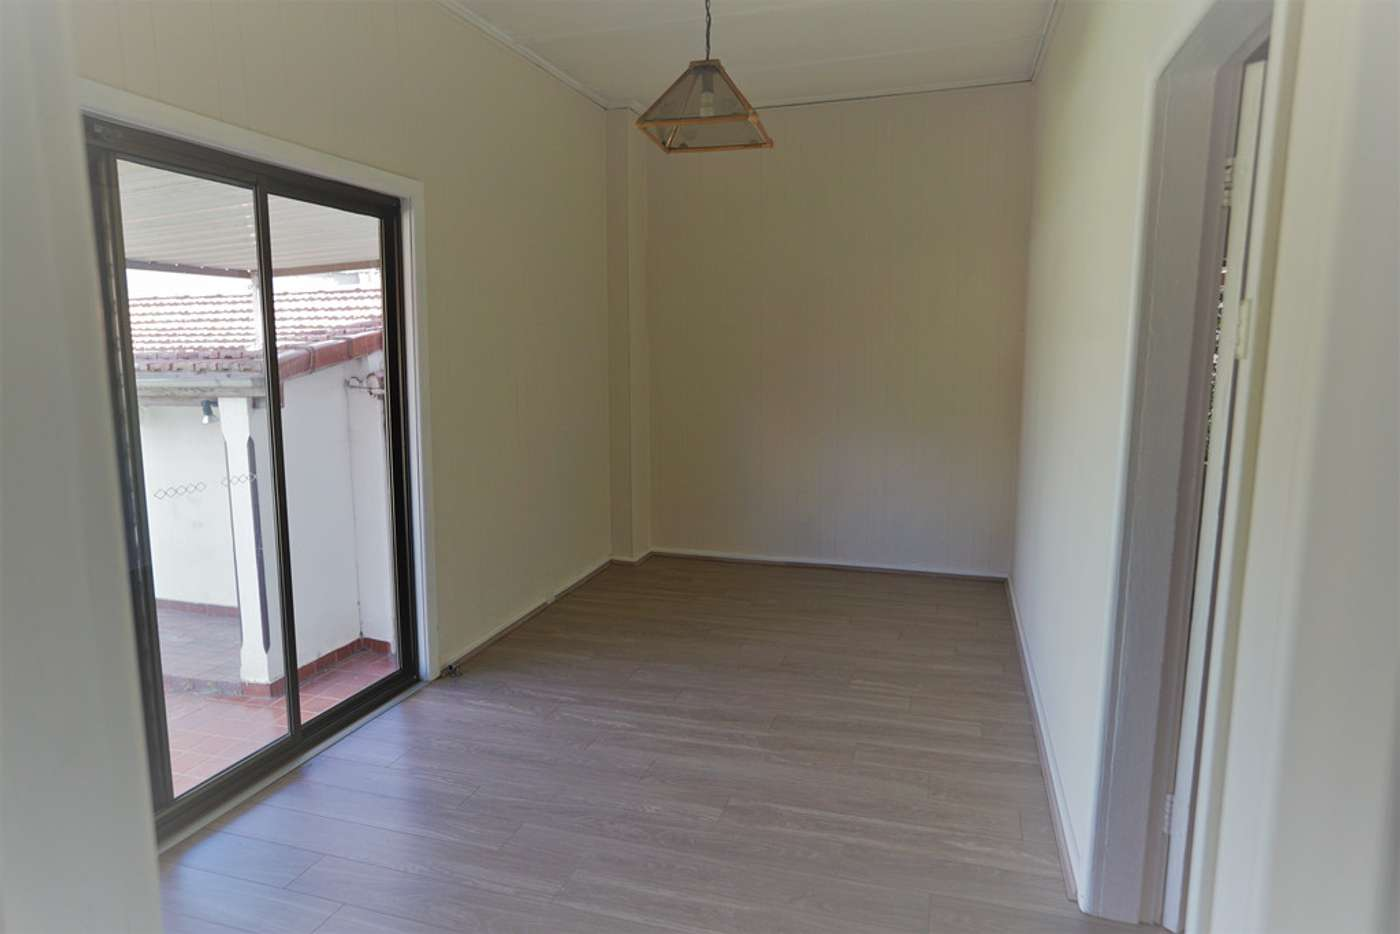 Seventh view of Homely house listing, 18 Franklyn Street, Concord NSW 2137